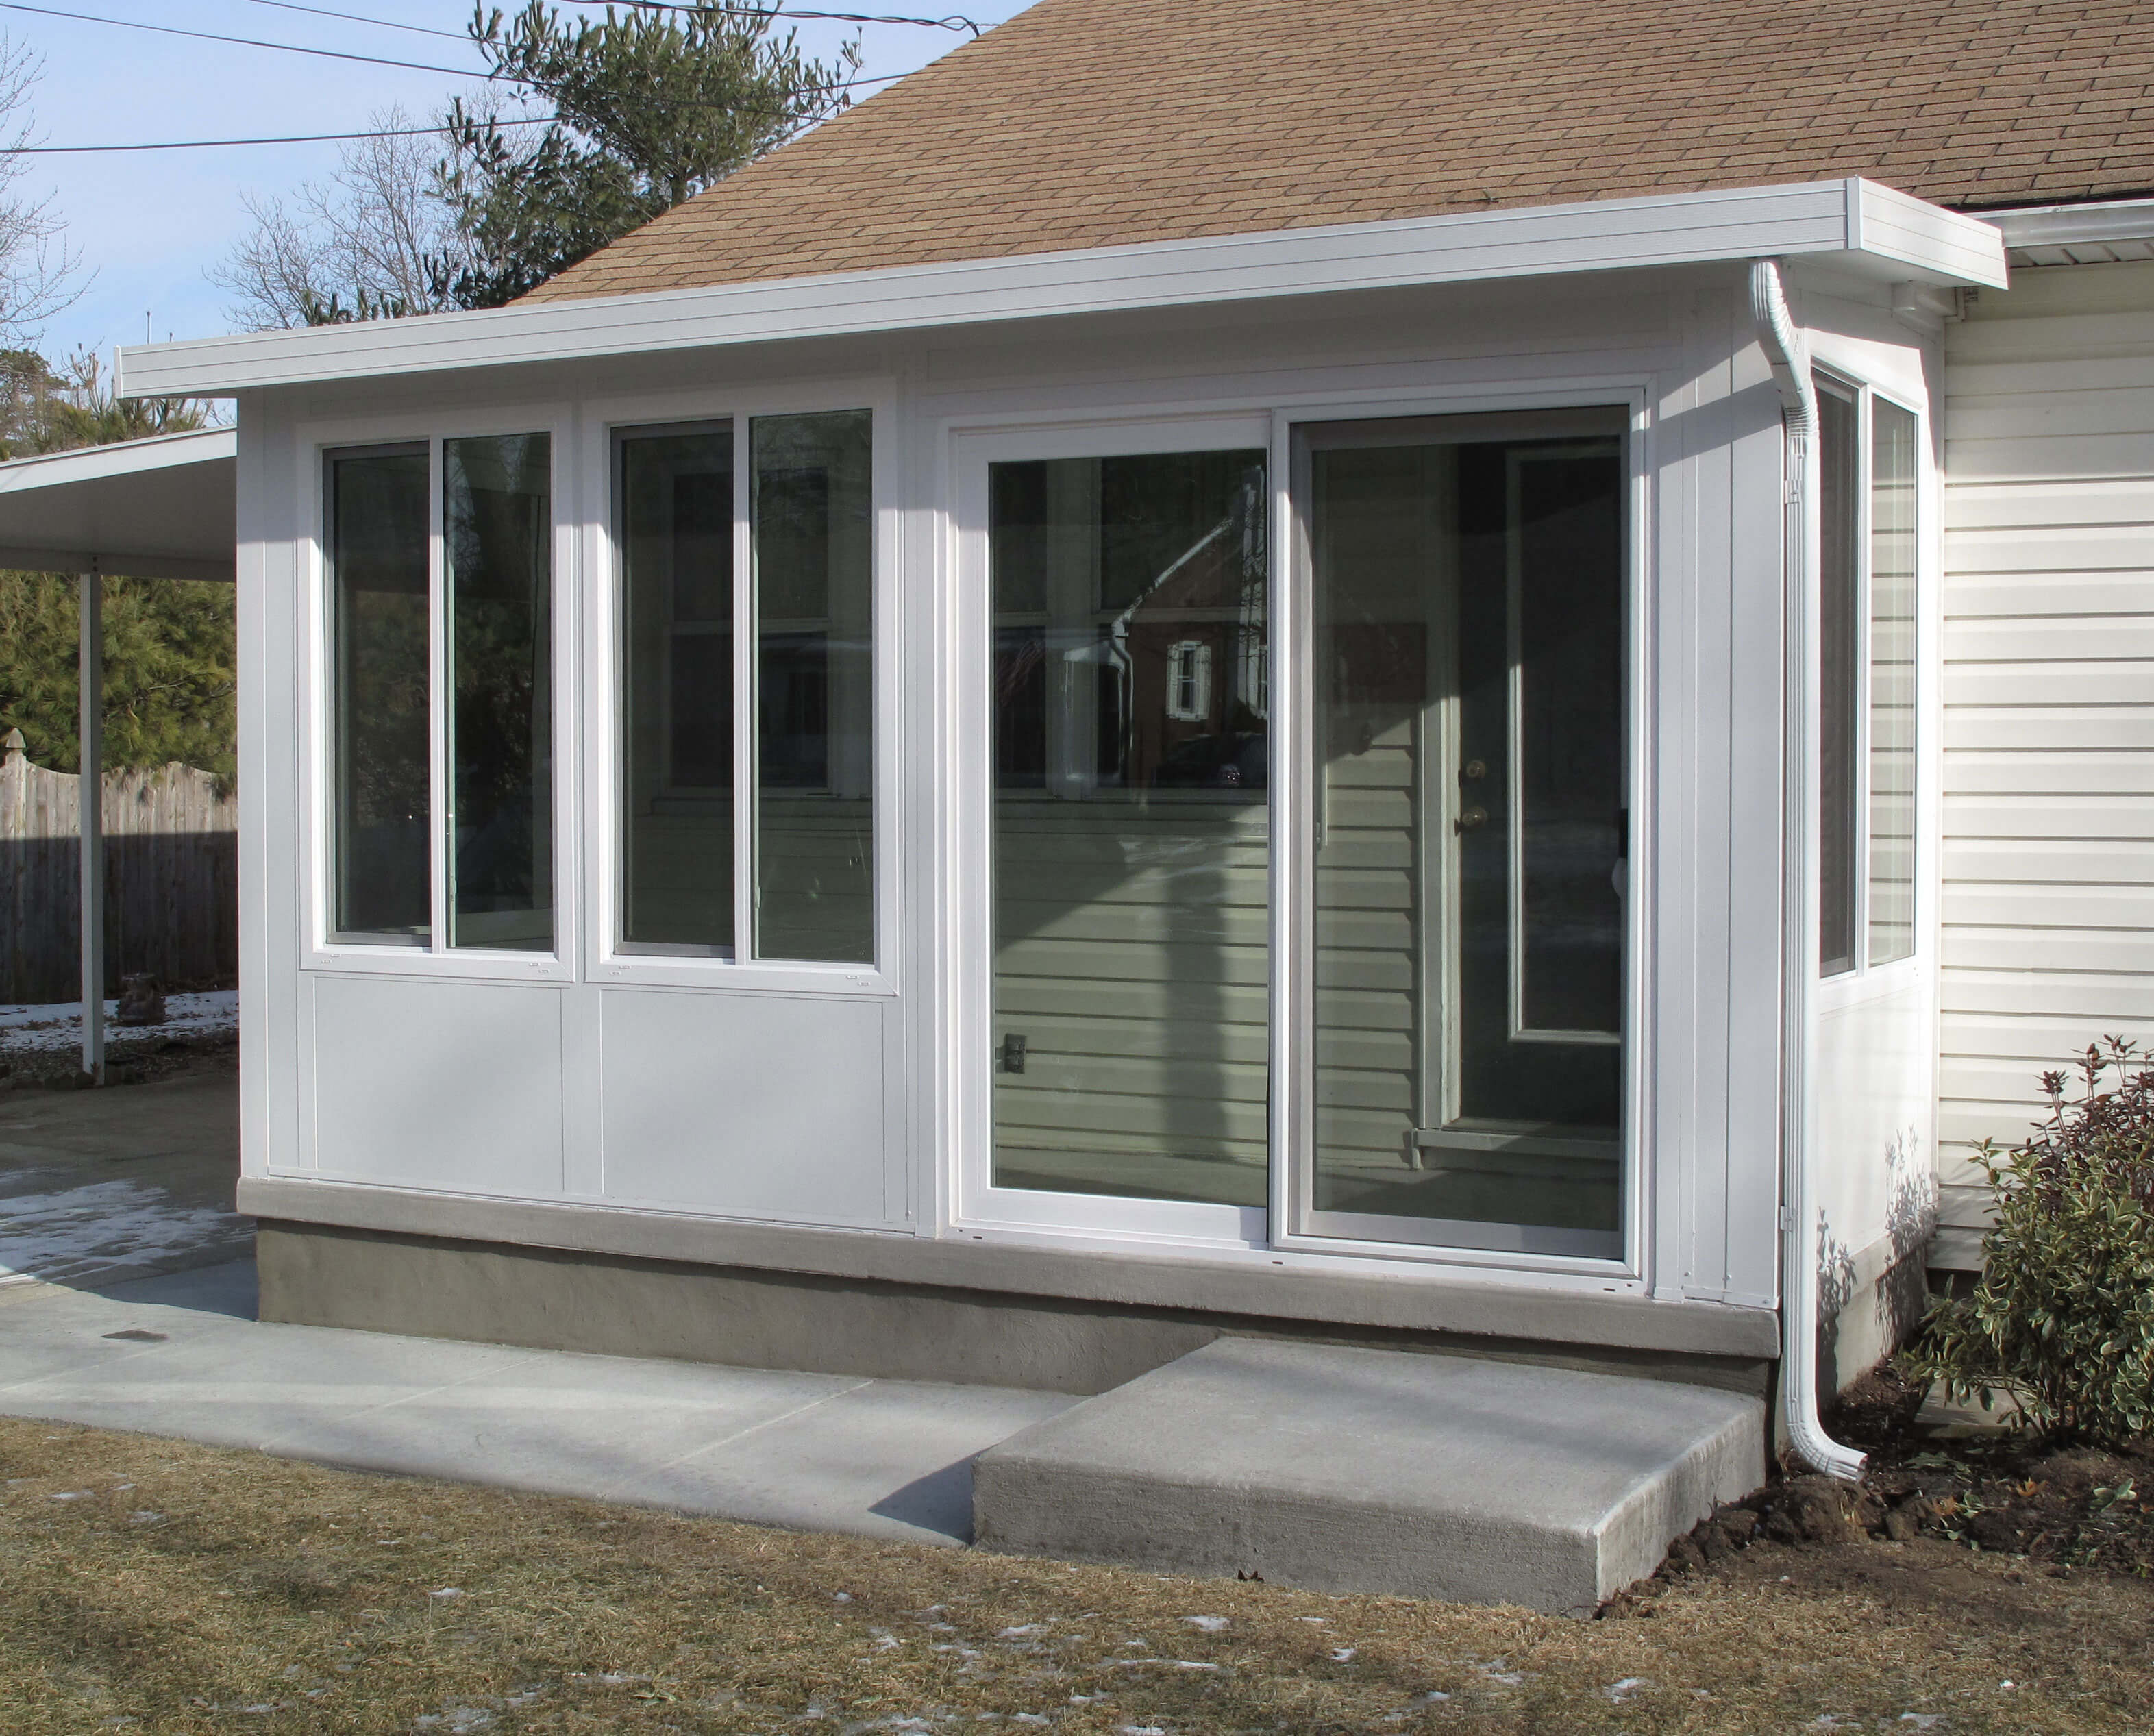 Awning contractor Cape May NJ | Patio Rooms | MiamiSomers on Patio Enclosures  id=76591